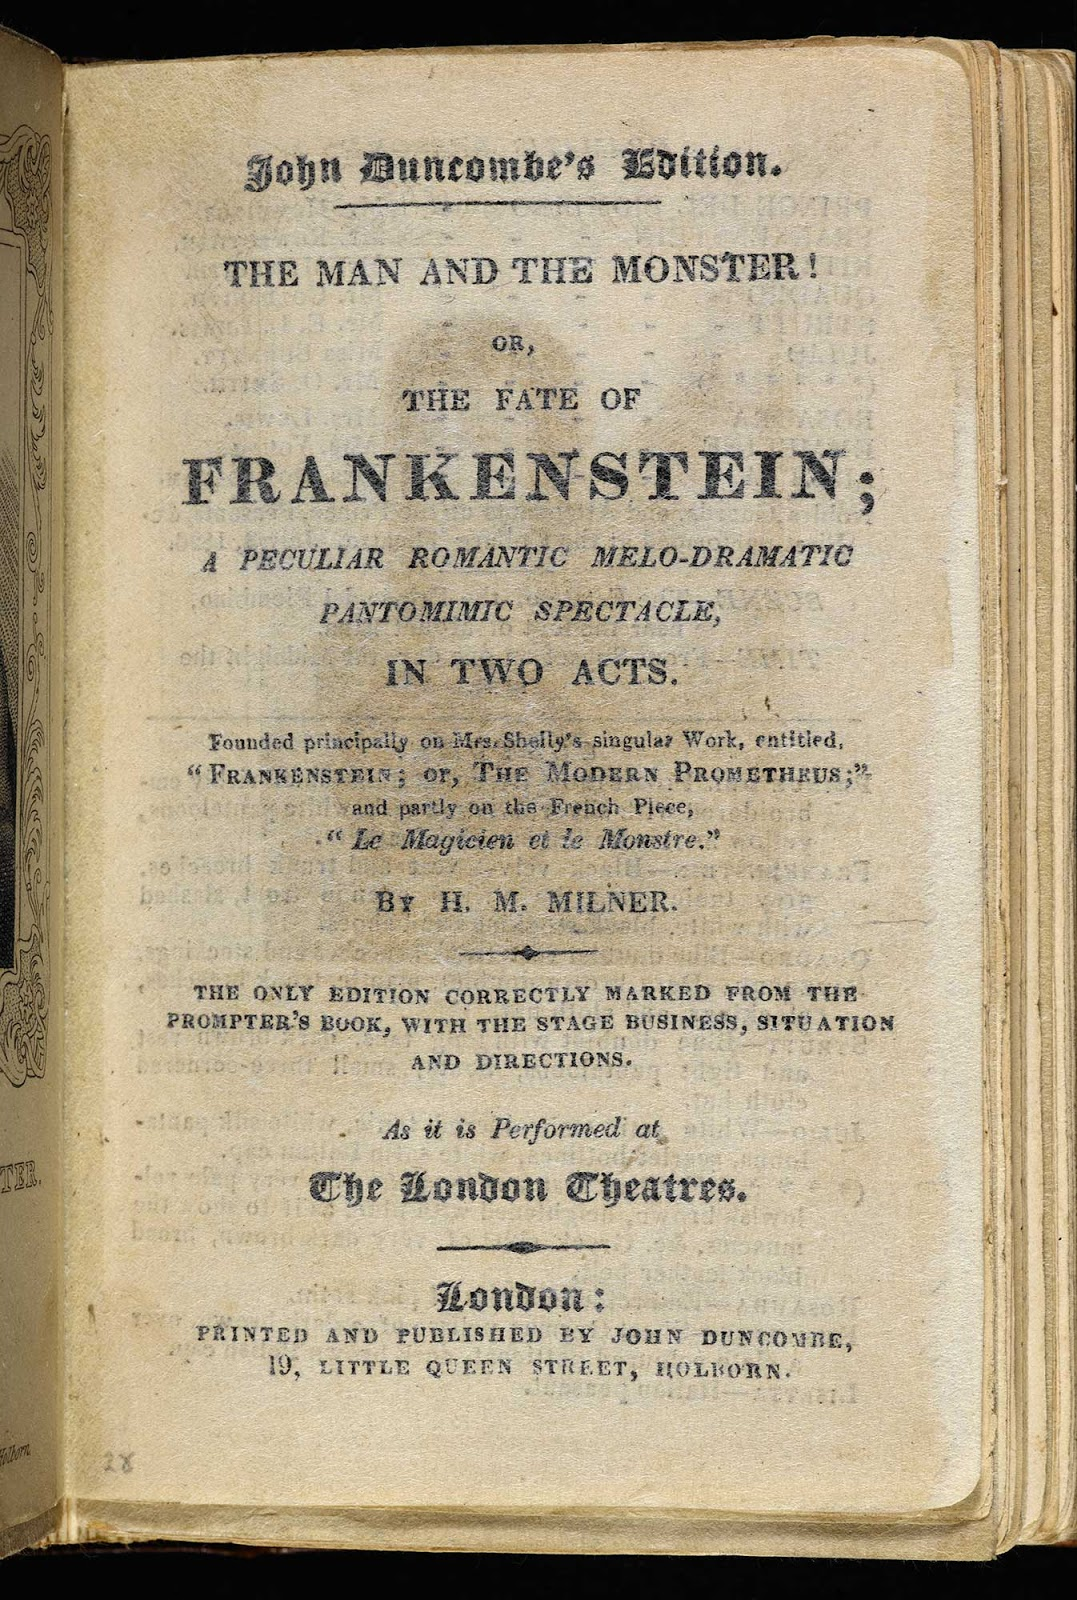 anti romantic elements in frankenstein Frankenstein's romantic values 1789 – 1824 good/god: science, knowledge: good/god: nature/natural world: reason science : emotion spontaneous overflow of human feelings - wordsworth love: god's mind and will a celestial clockwork manifest in scientific/mathematical understanding of natural world.